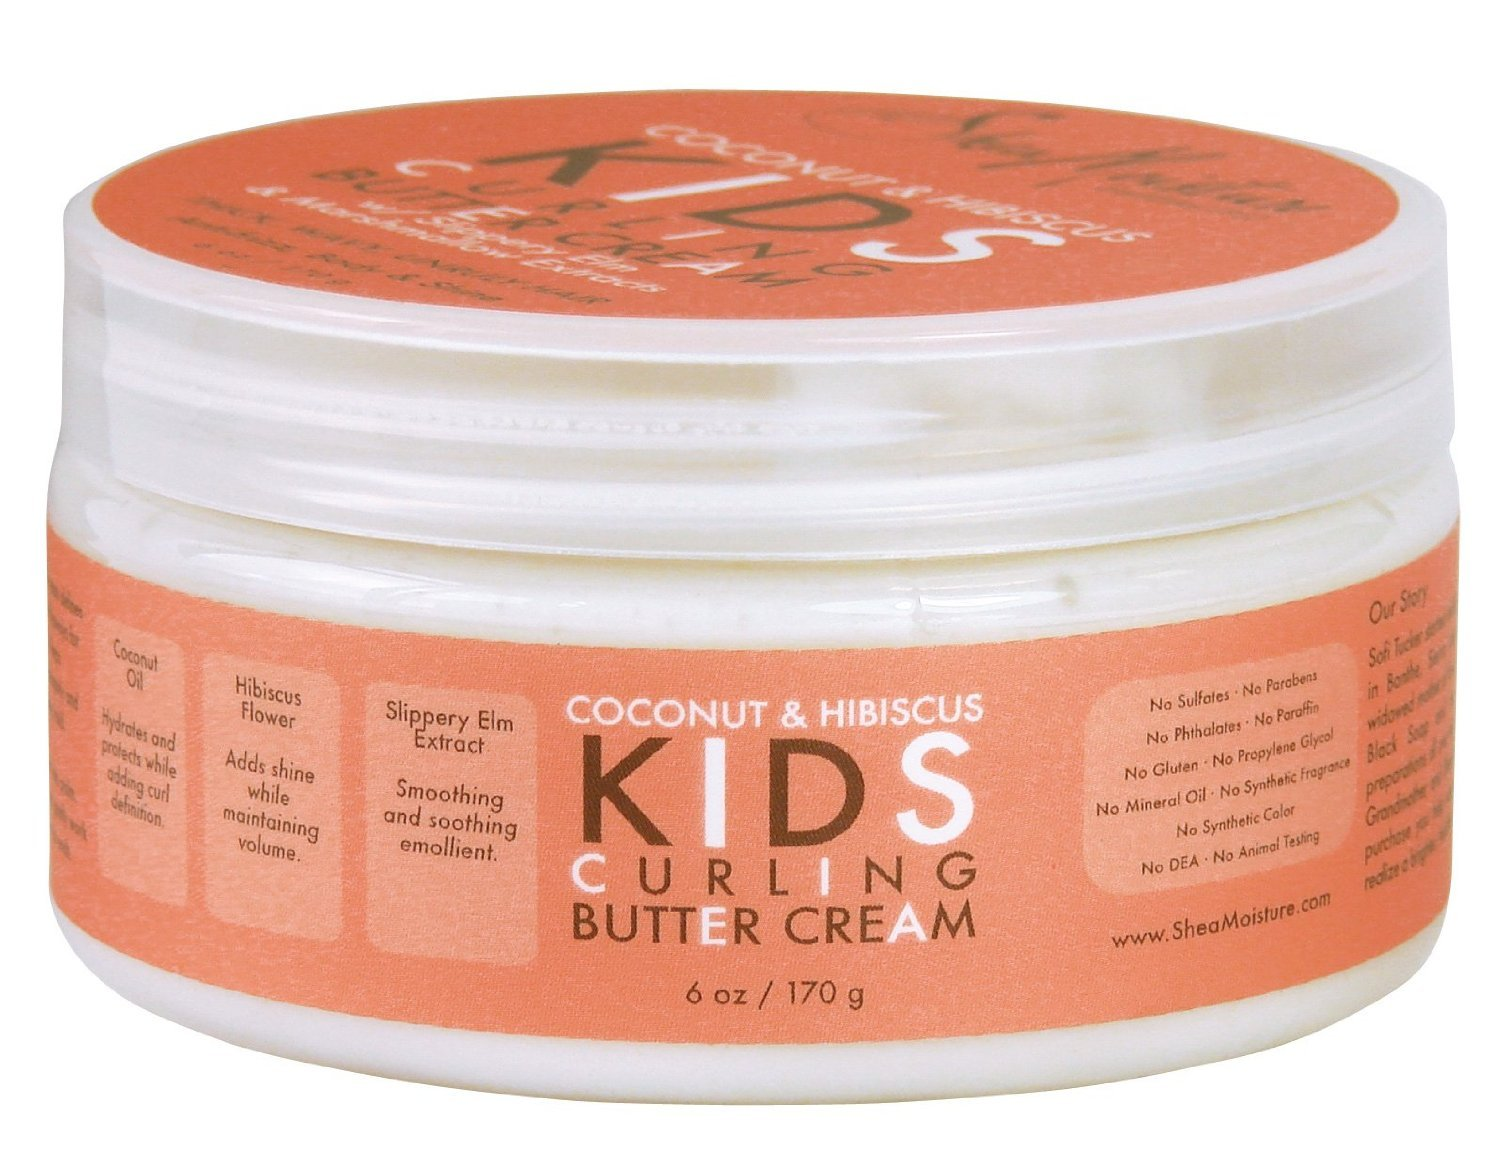 Shea Moisture Coconut & Hibiscus Kids Curling Butter Cream, 6 Ounce